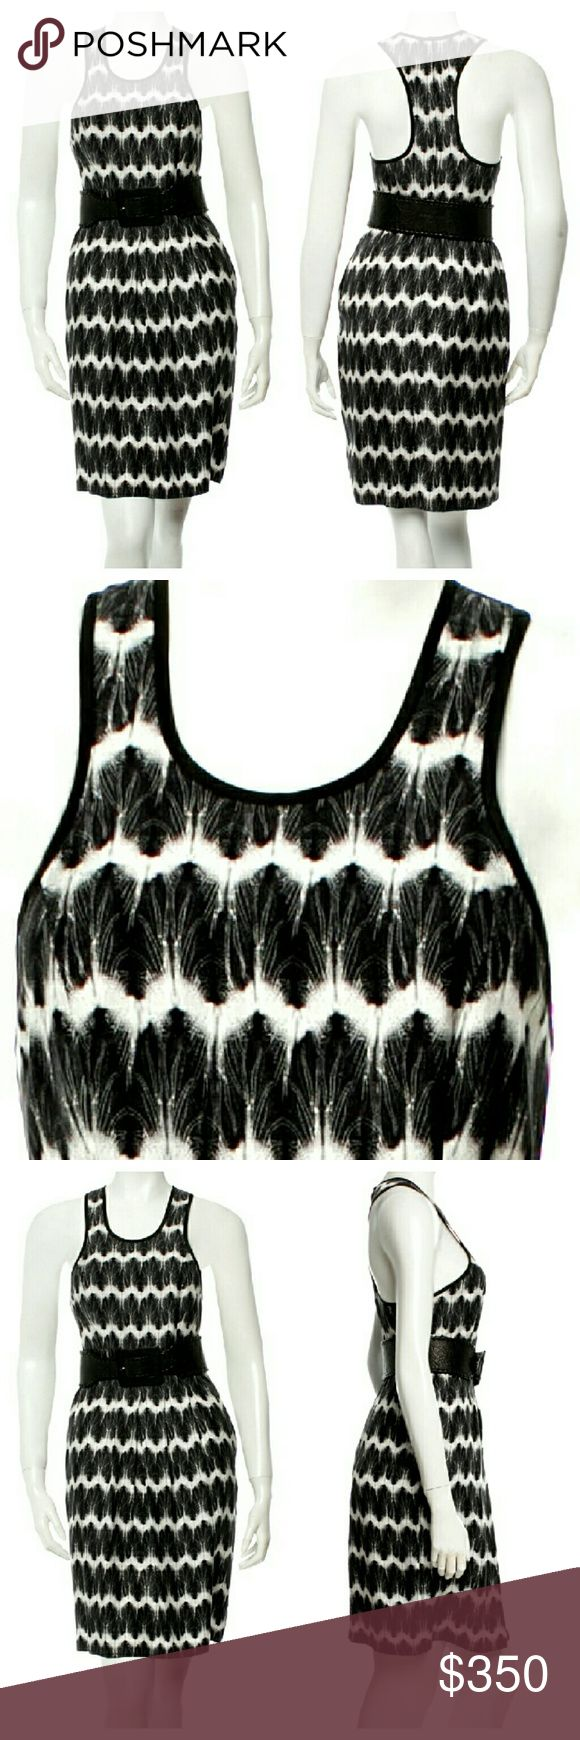 Thomas Wylde Silk Printed Dress Like new. 100% silk. See comments for more info. Thomas Wylde Dresses